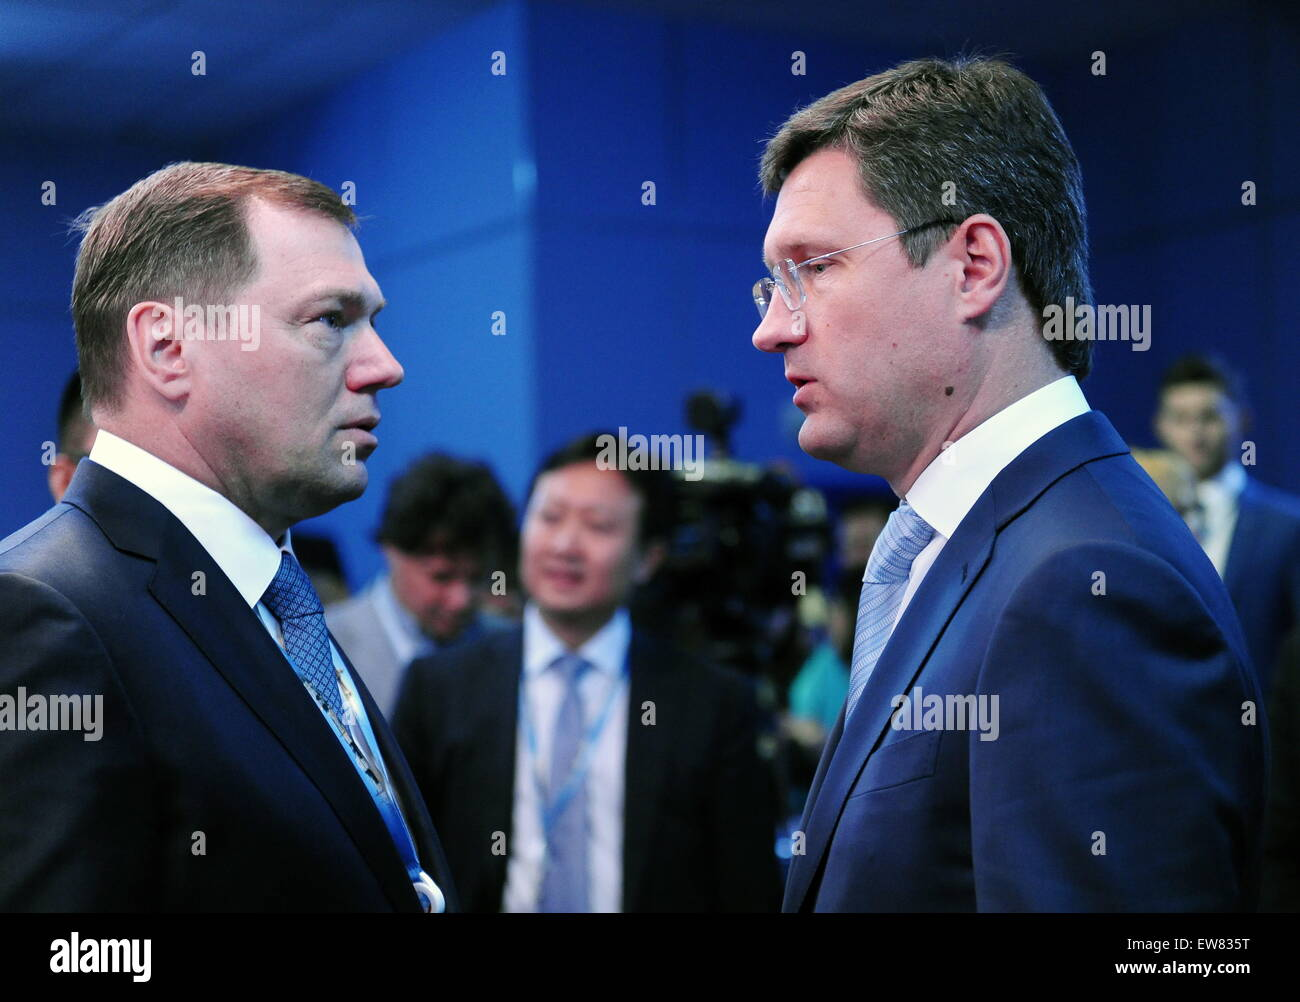 "St. Petersburg, Russia. 19th June, 2015. JSC ""Rosseti"" general director Oleg Budargin (L) and Russia's energy minister Stock Photo"